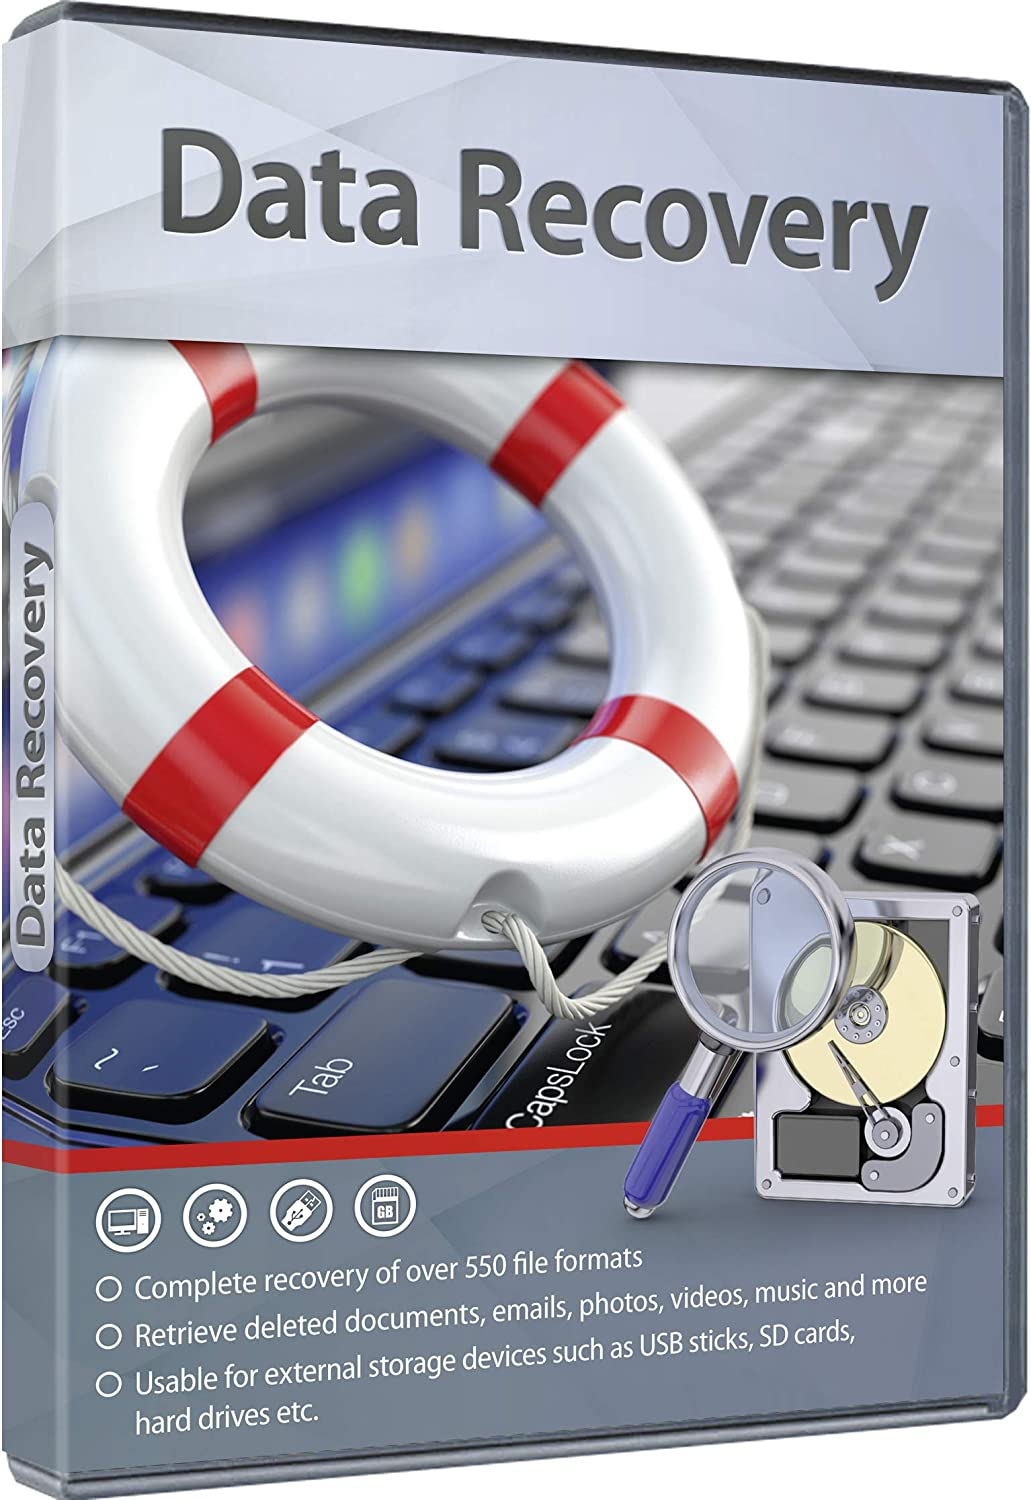 Data Recovery - Complete recovery of over 550 file formats for your Windows 10, 8, 7 PC - recover lost files from hard drives, SD cards and USB sticks 71HBoOzAeJL